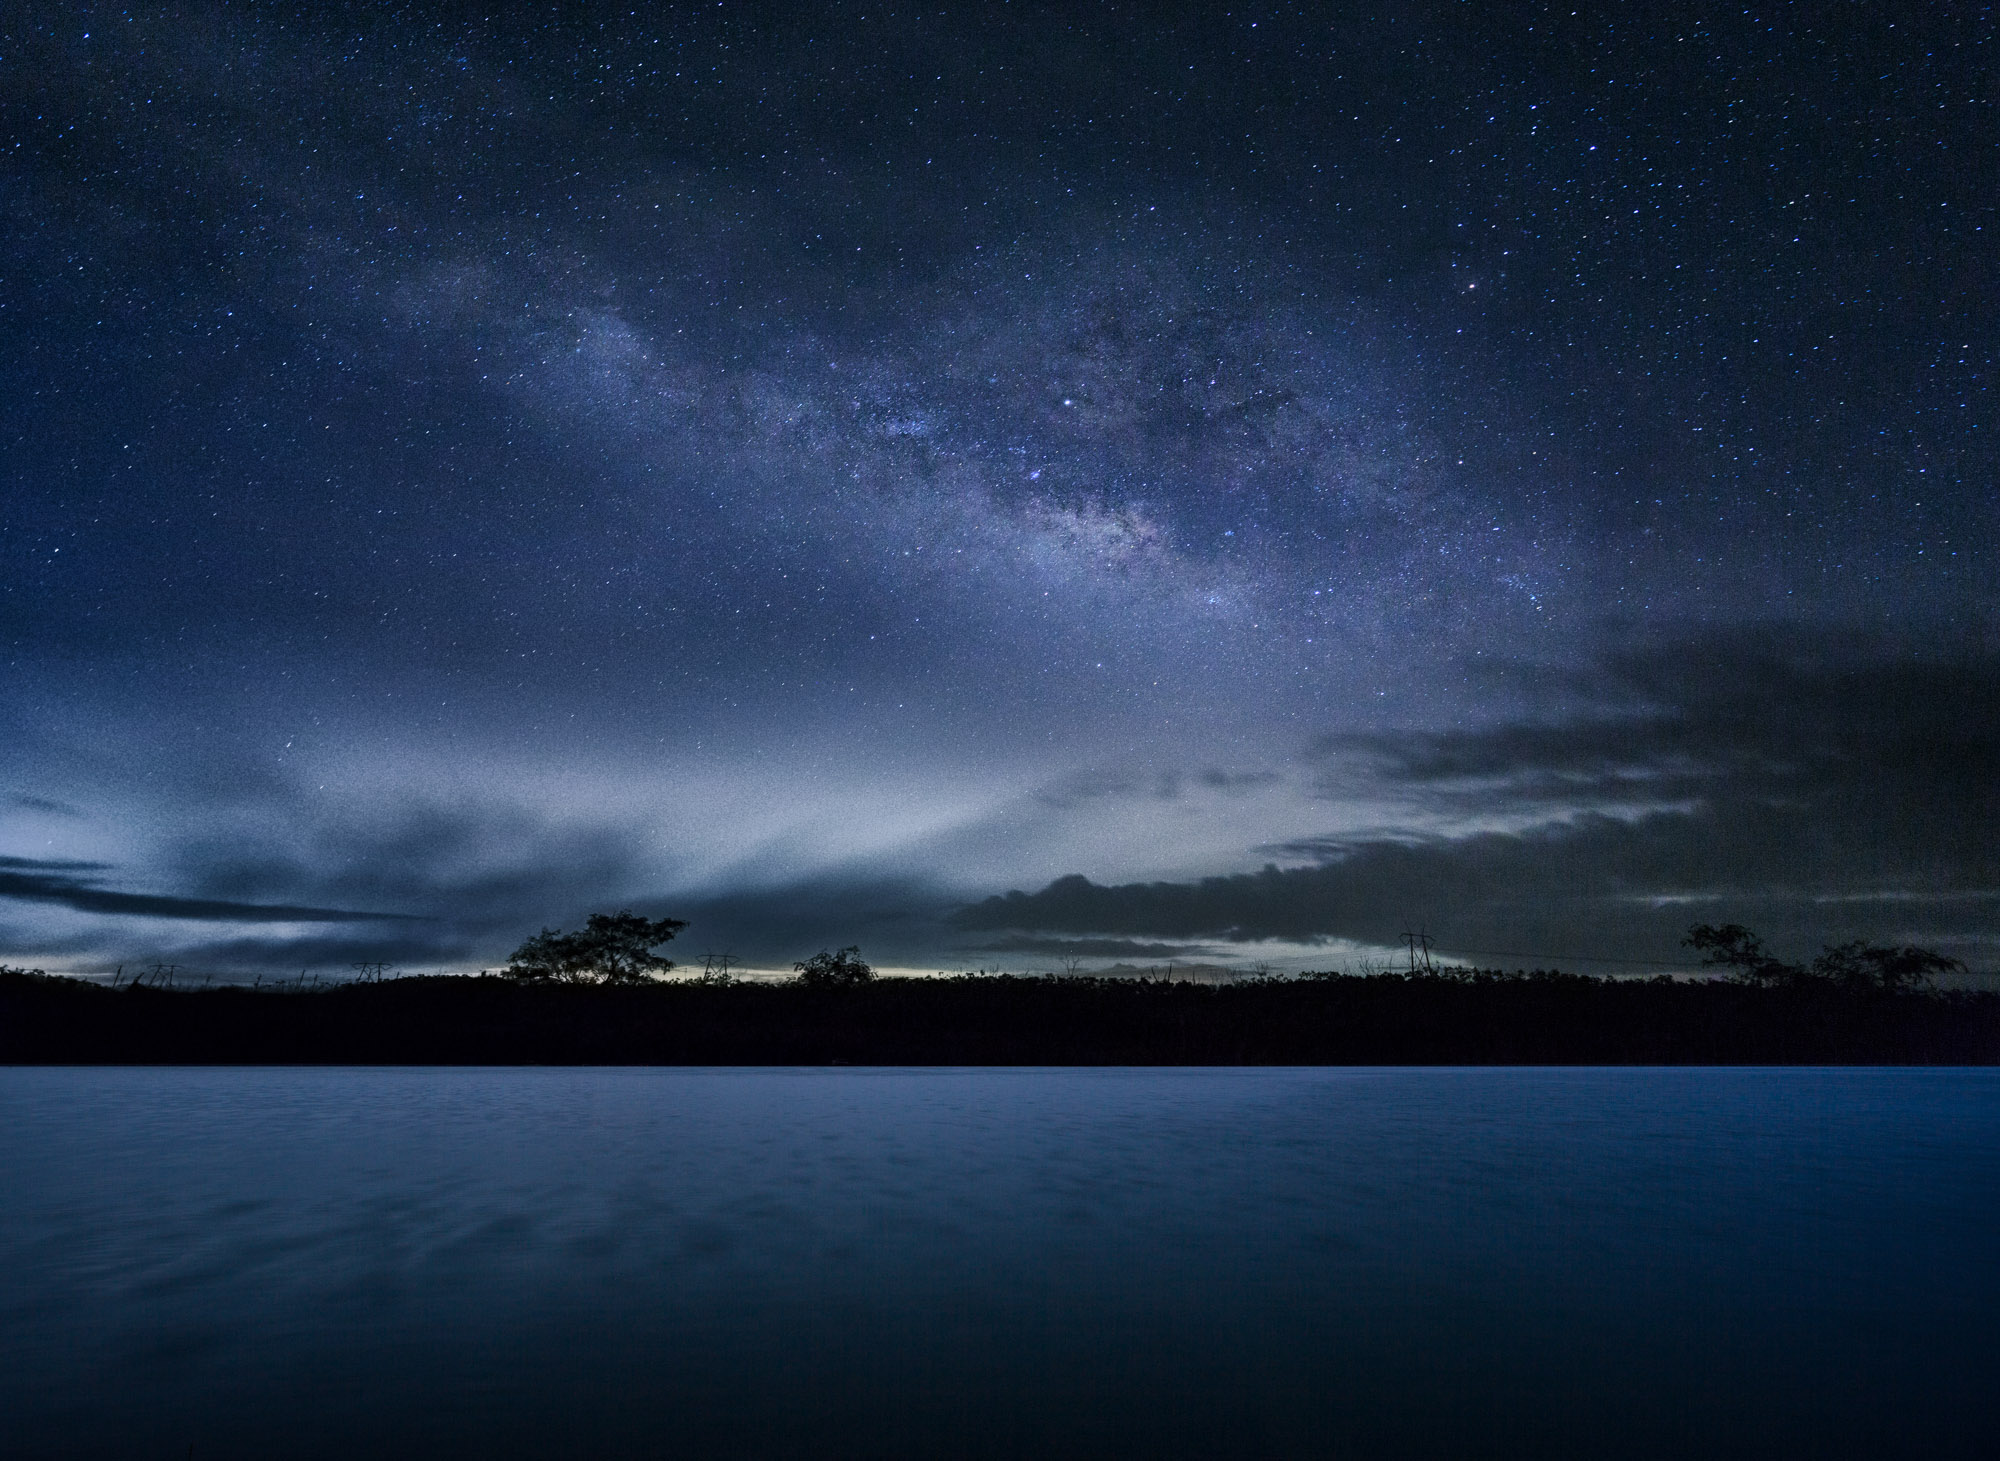 long exposure astrophotography of the milky way in the USA beside a lake in Florida USA